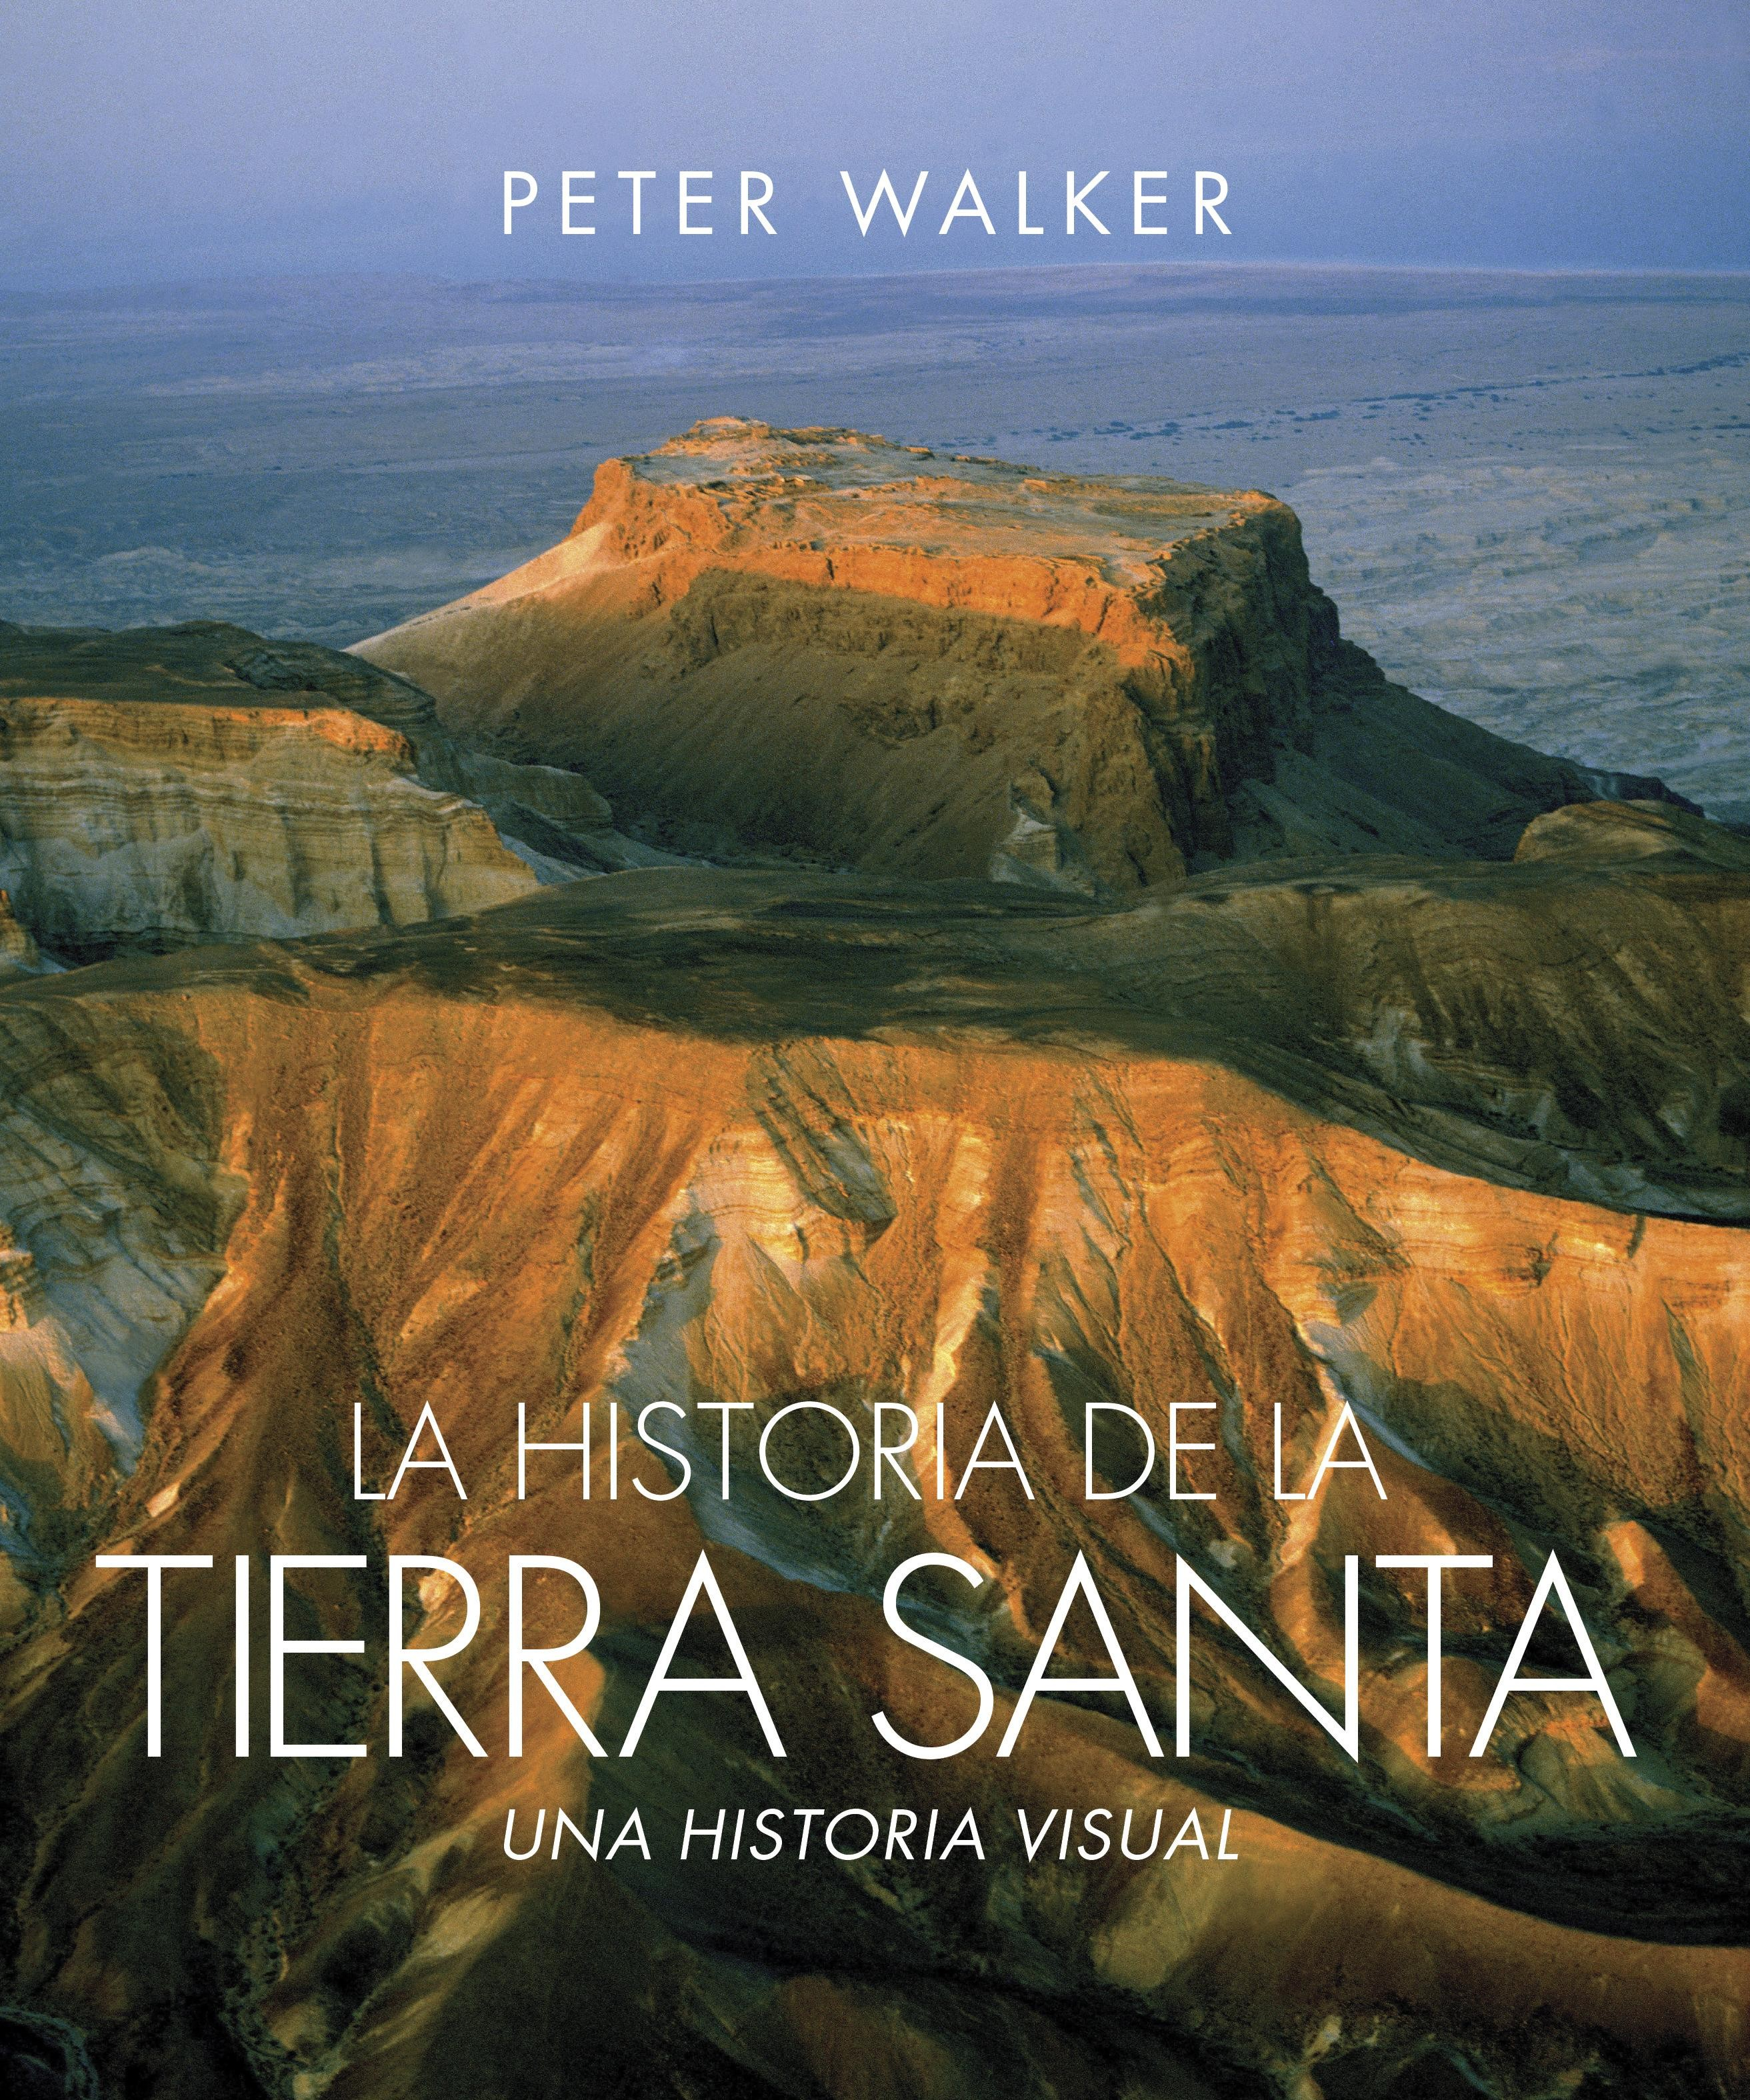 La historia de la Tierra Santa: The Story of the Holy Land